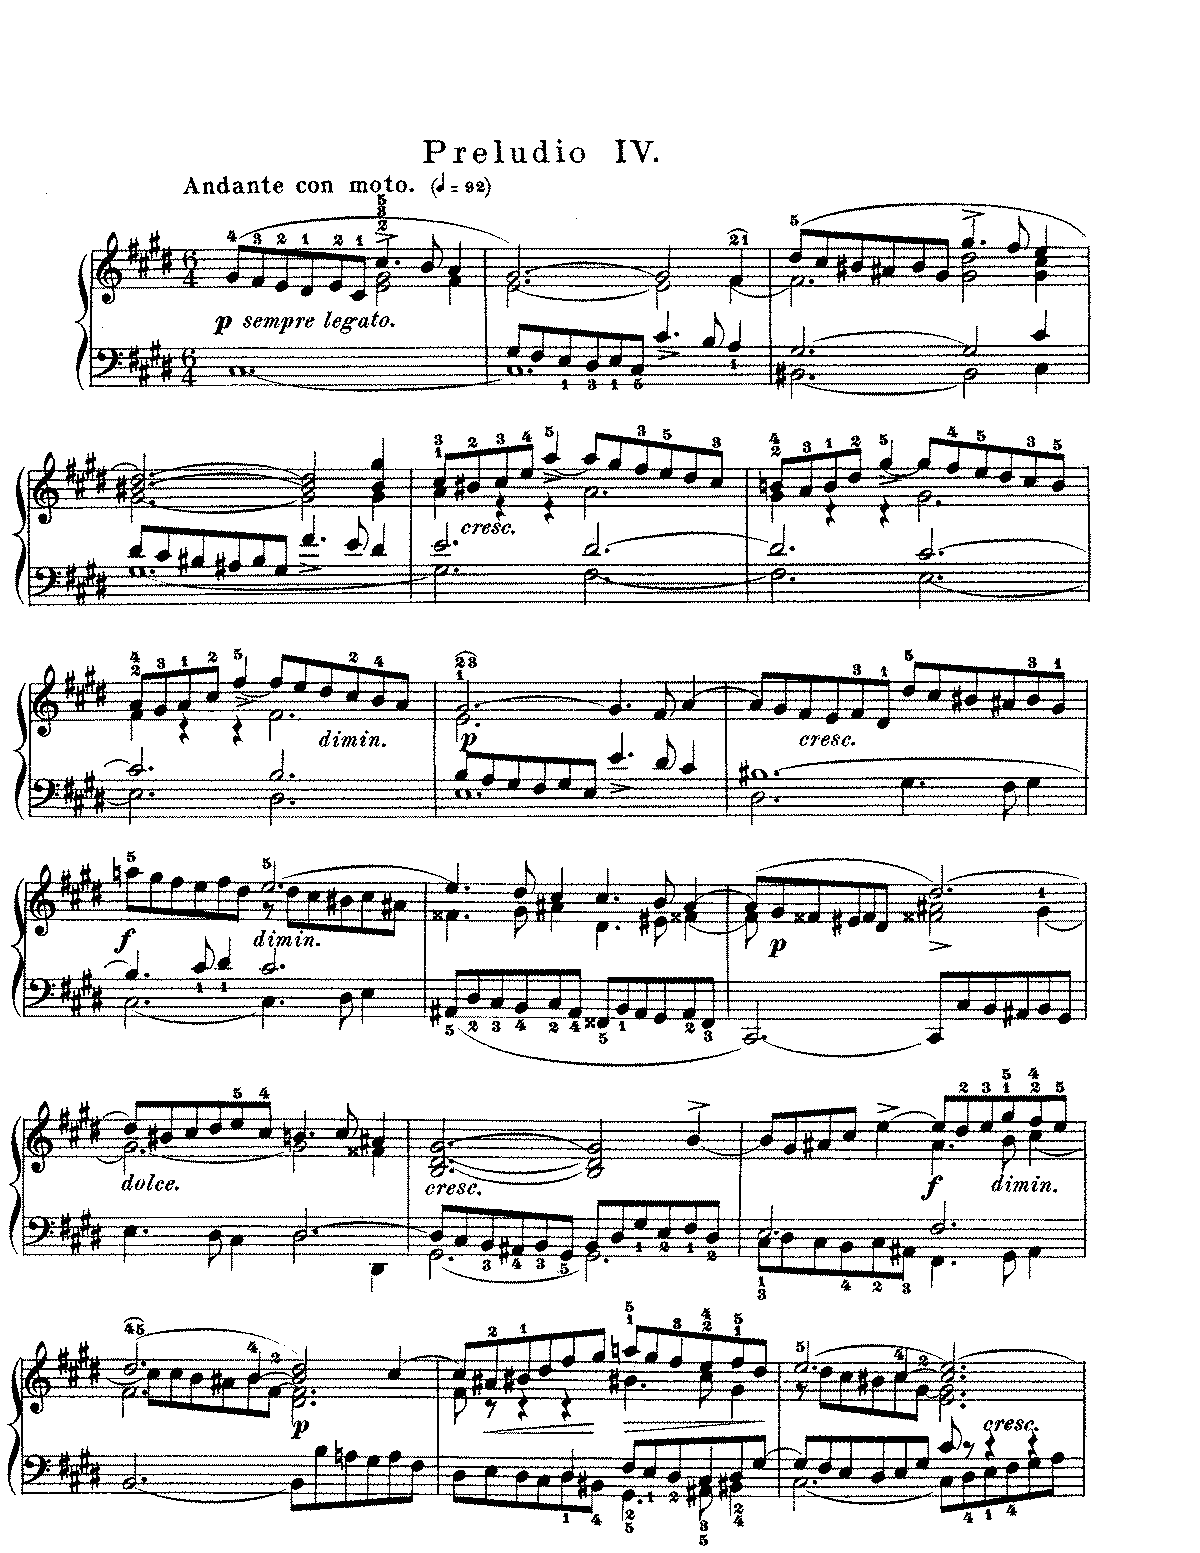 fuge in c minor bach Fugue in c minor has an exposition, middle section and final section he has also put in four episodes and four middle entries the four episodes are bars 9-13, 14-17, 18-21, 22-31.